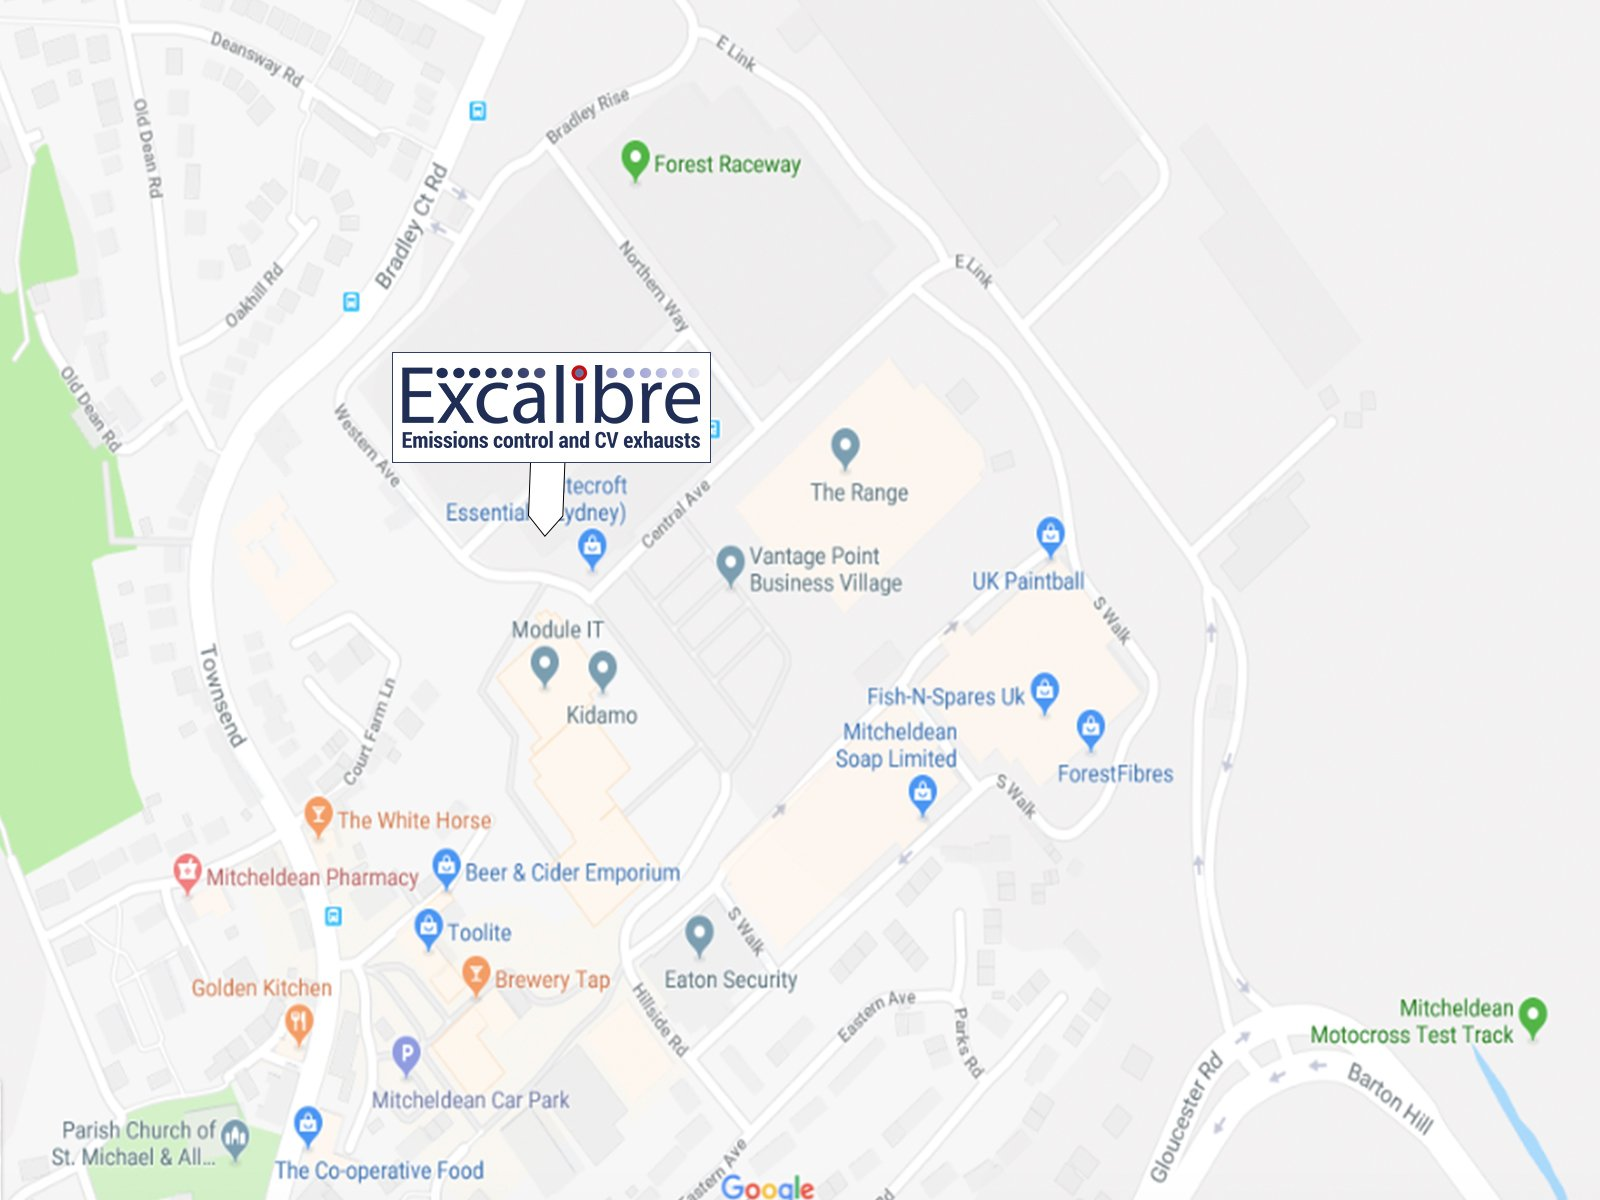 Where Excalibre are based